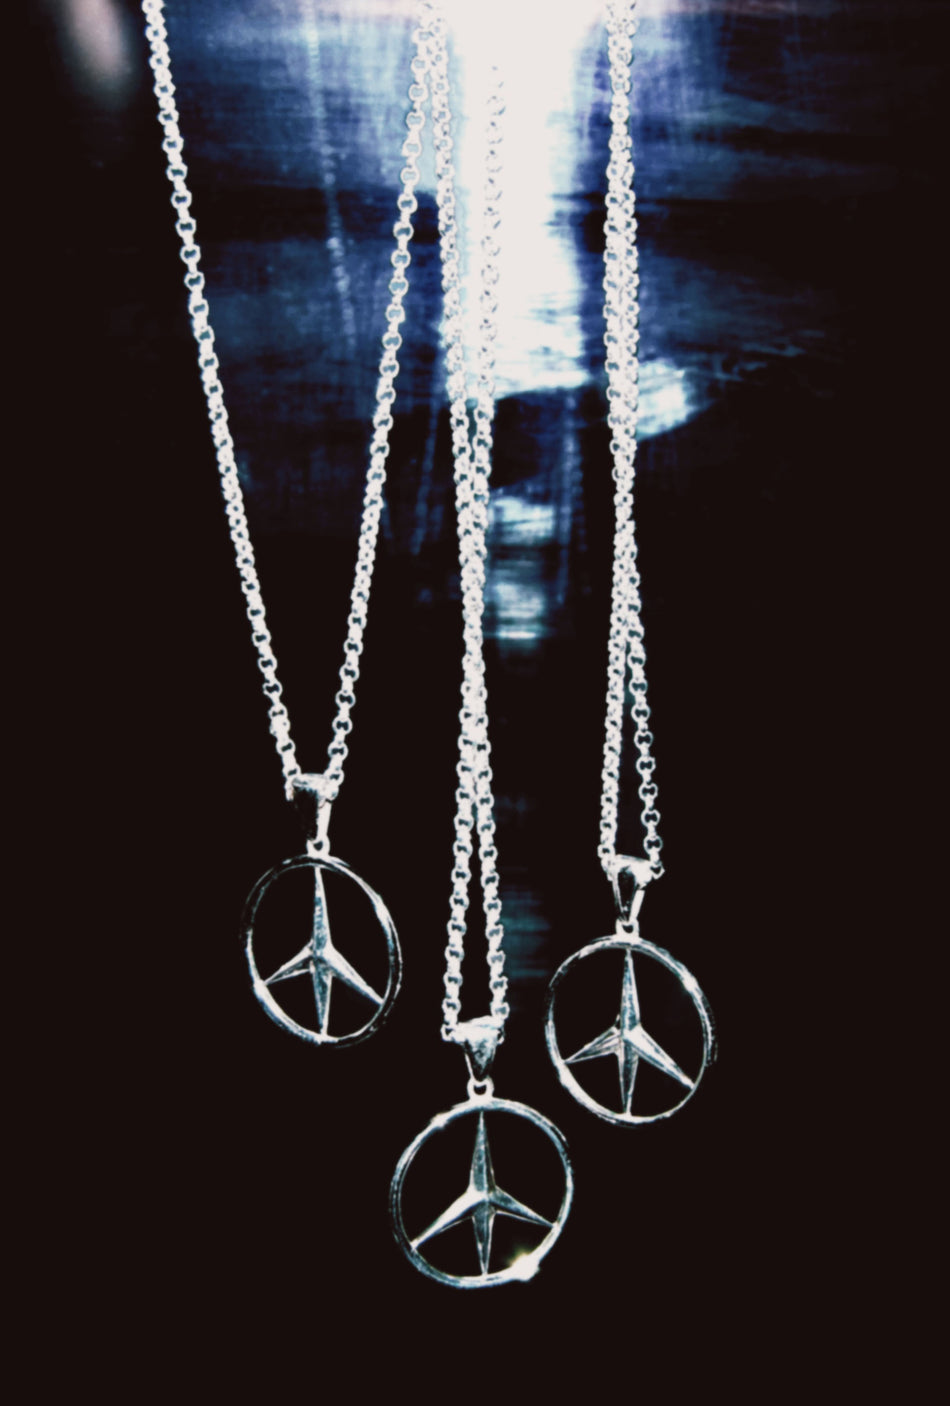 HOMIES PEACE PENDANT and CHAIN